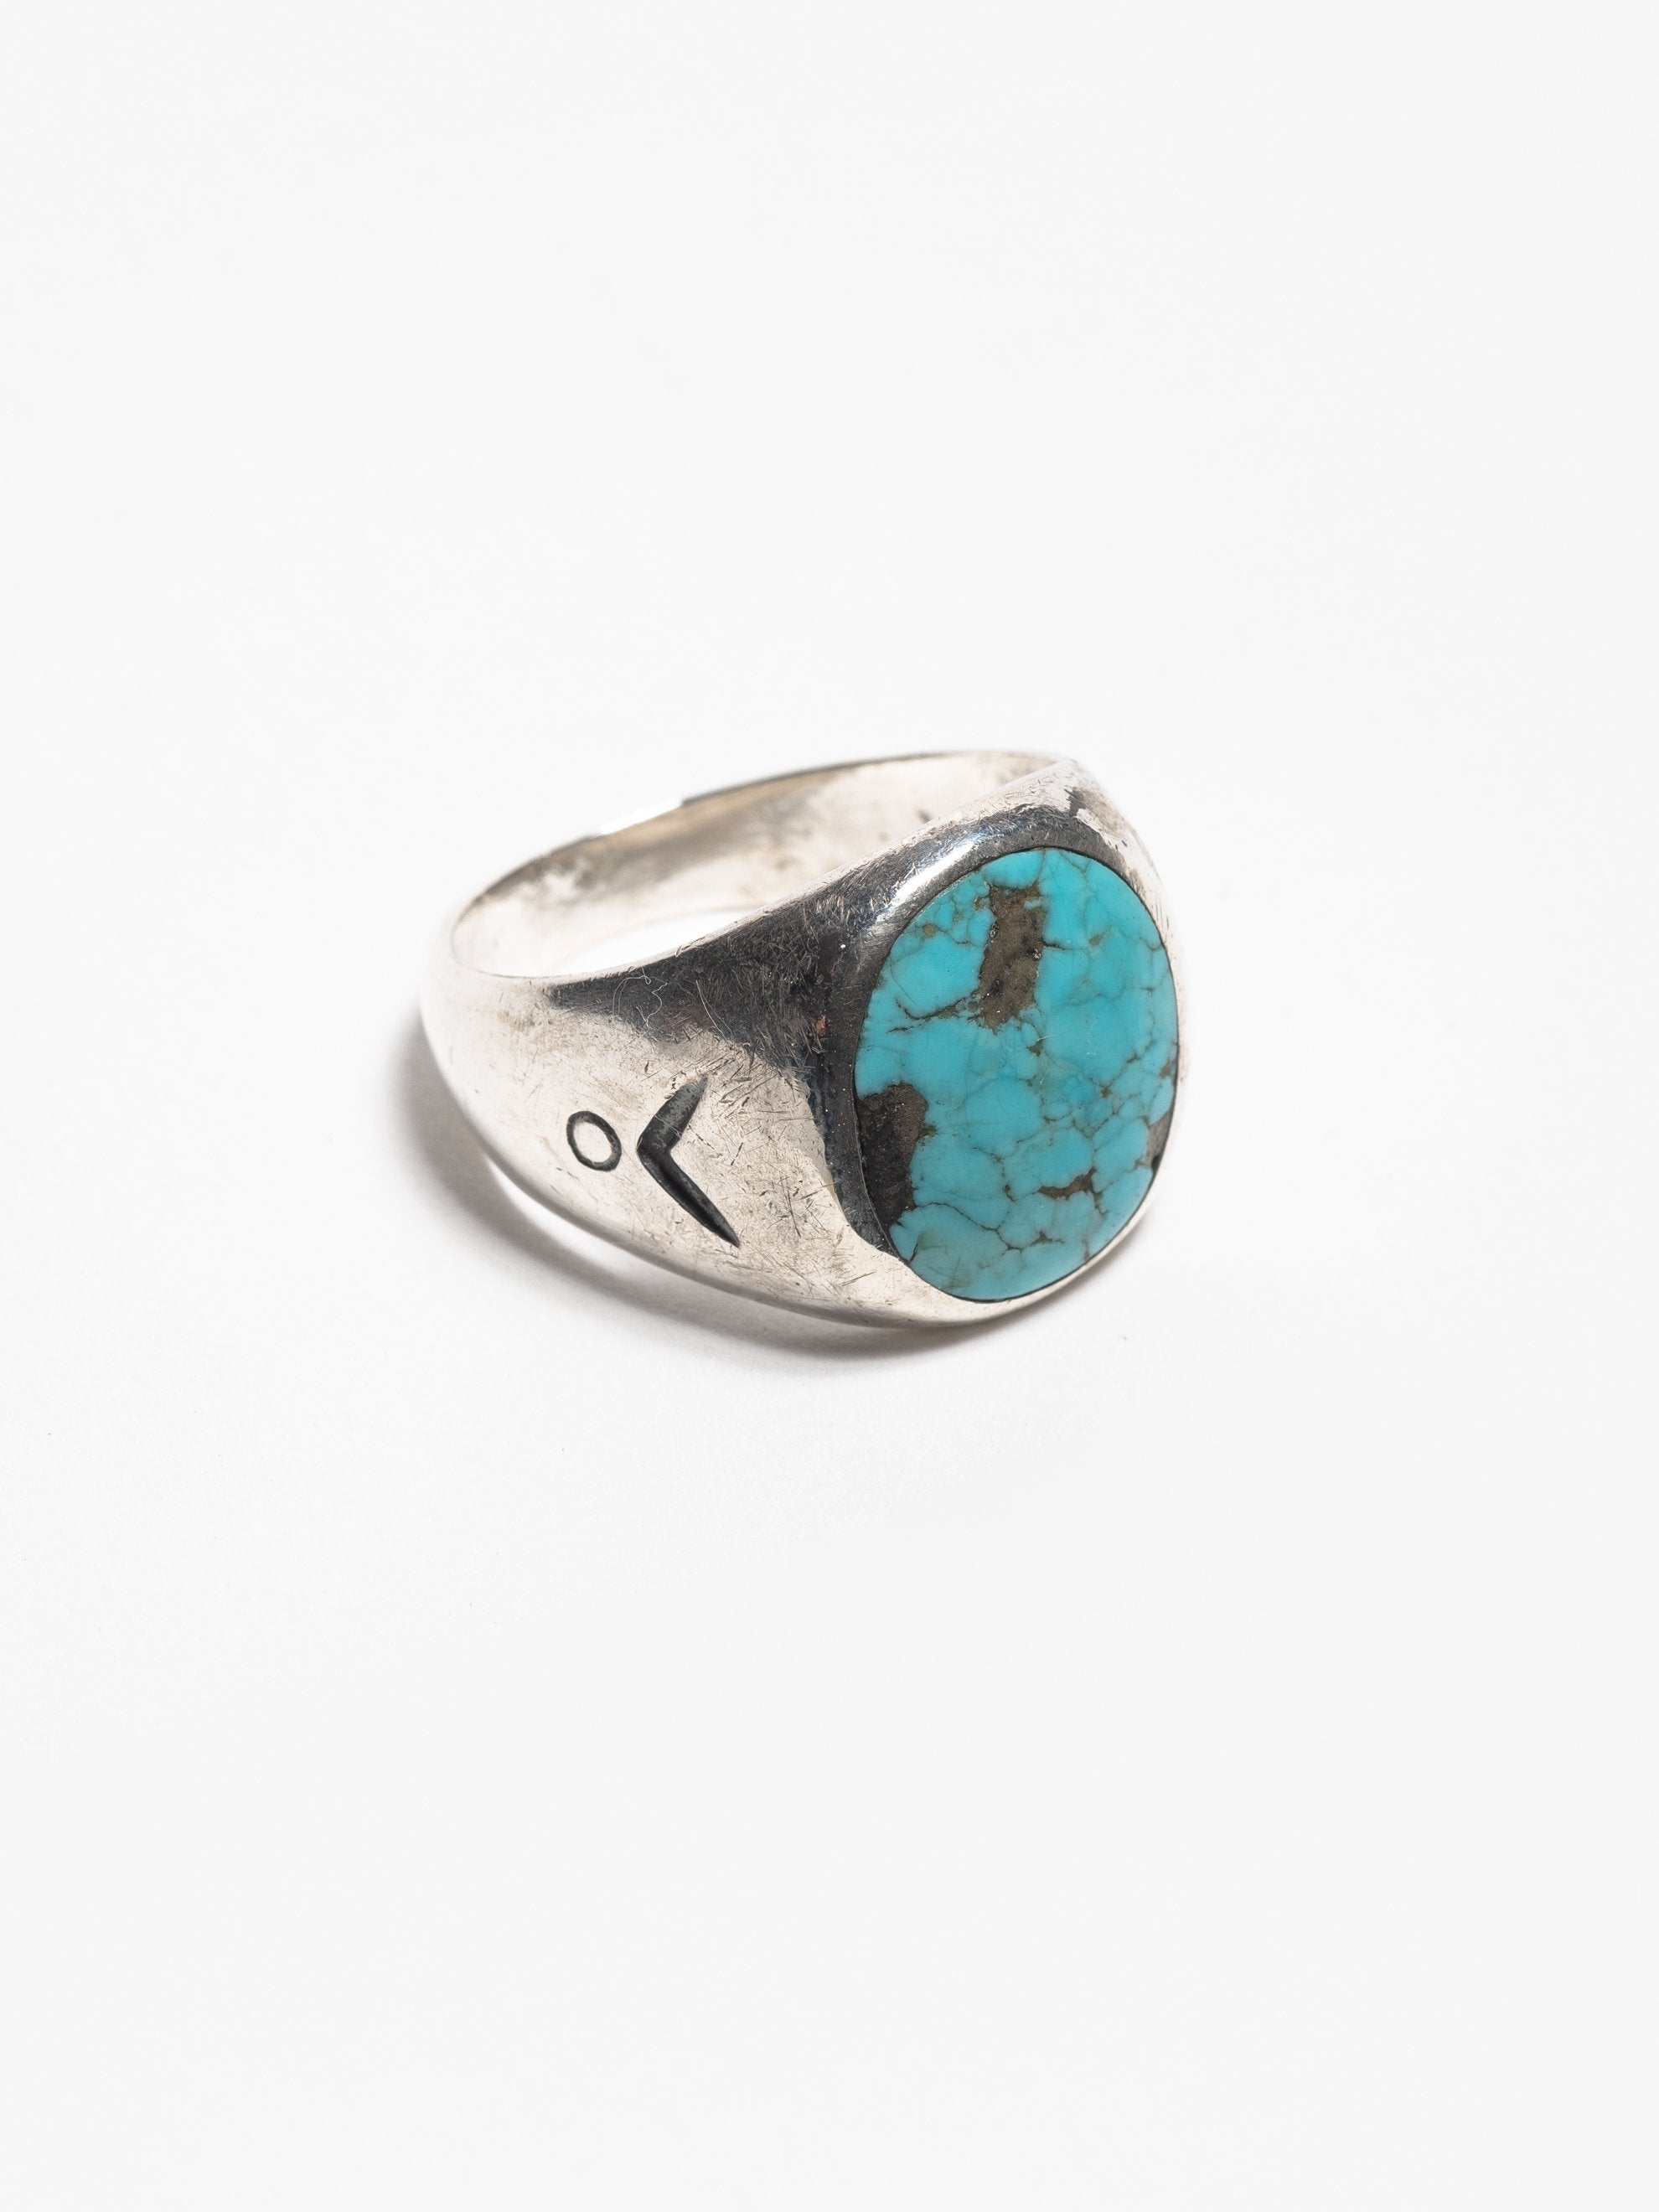 Sterling Silver Vintage Navajo Sterling Men's Ring with hand stamped design & inset turquoise stone 2